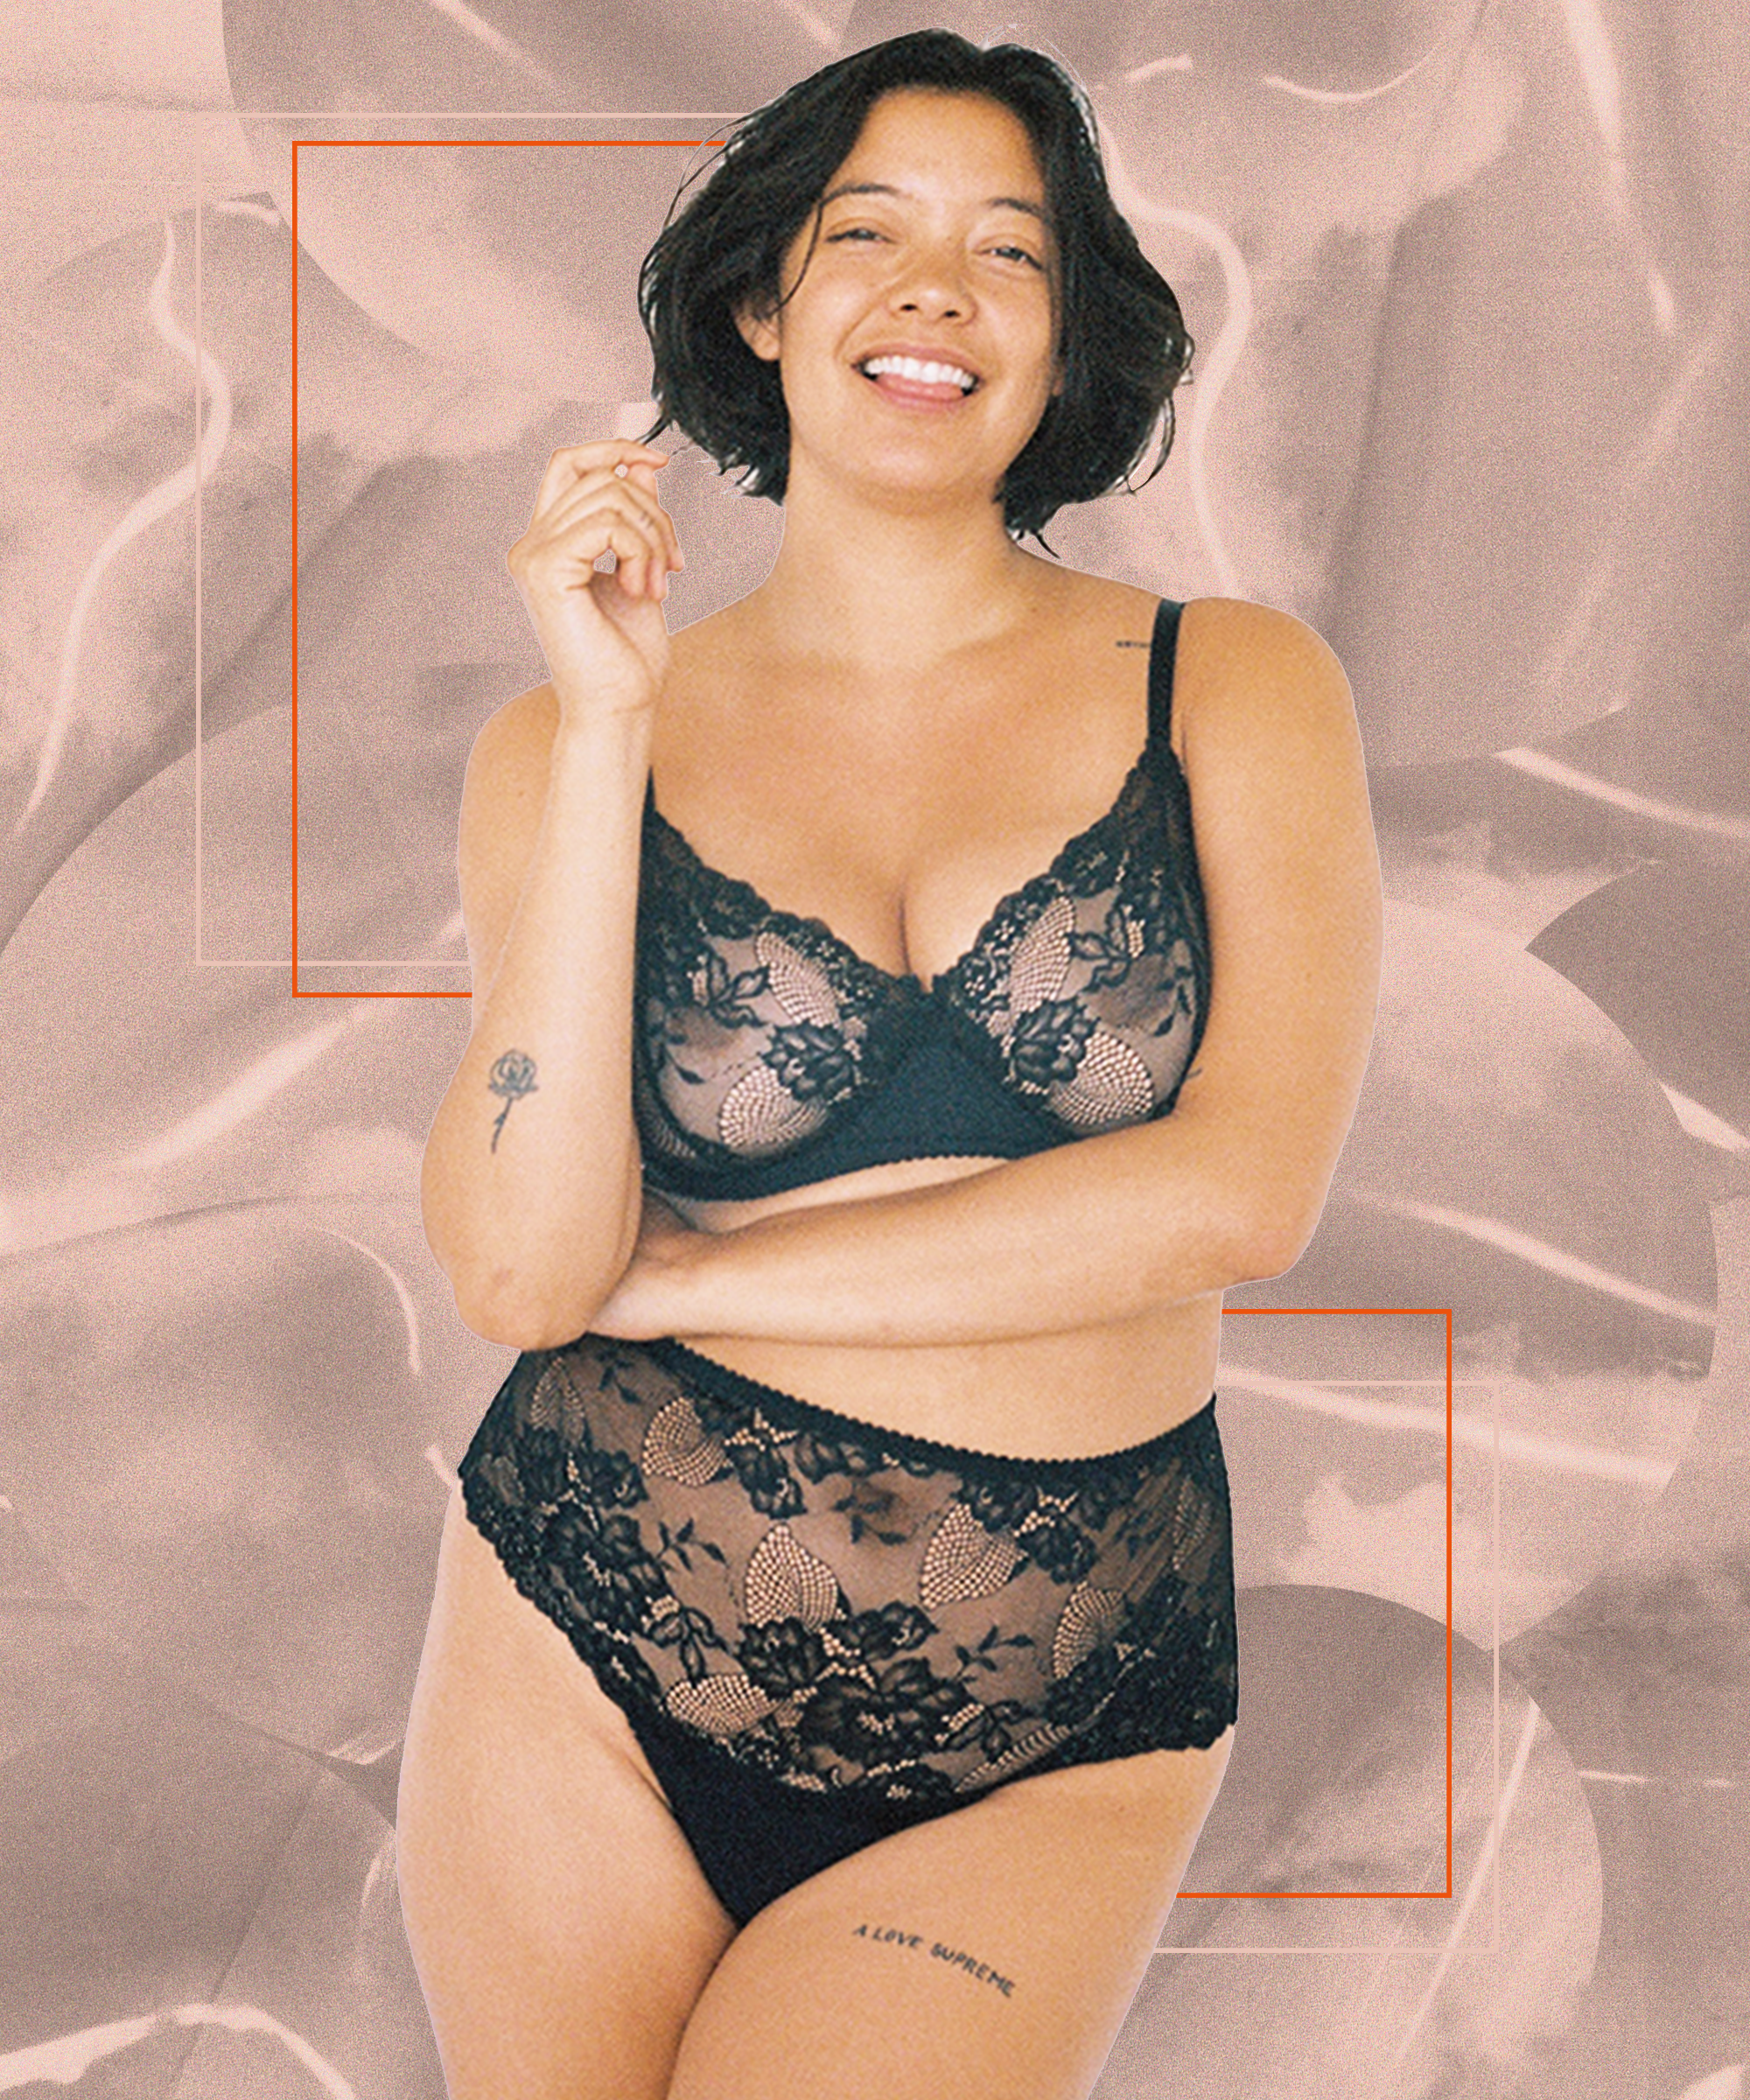 19 Lace Lingerie Sets To Buy Yourself This Valentine's Day